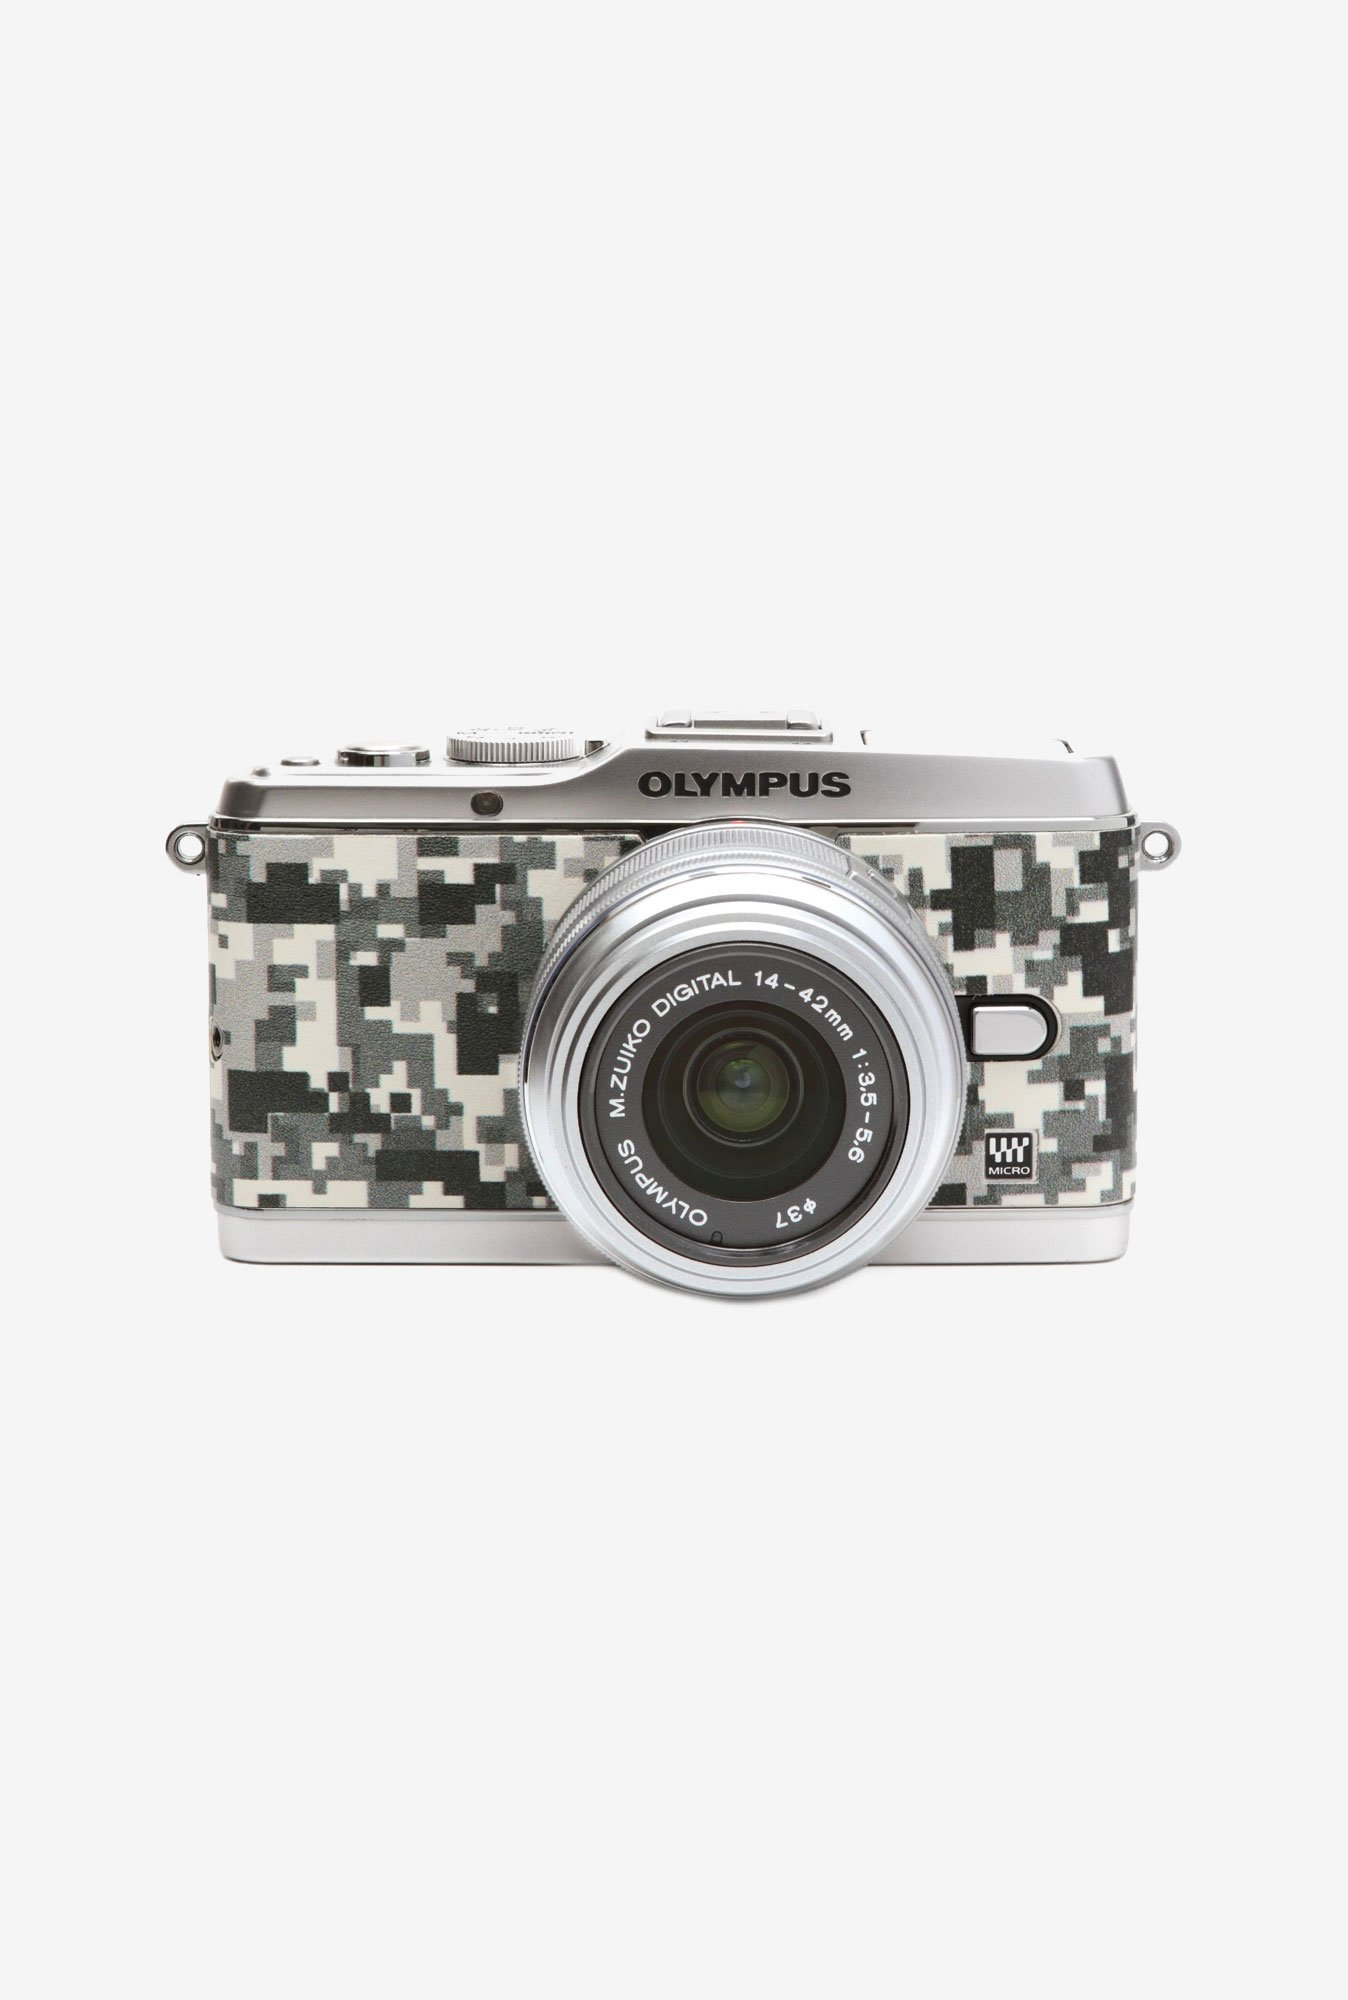 Japan hobby tool Olympus E-P3 Leather Sticker (Camouflage)